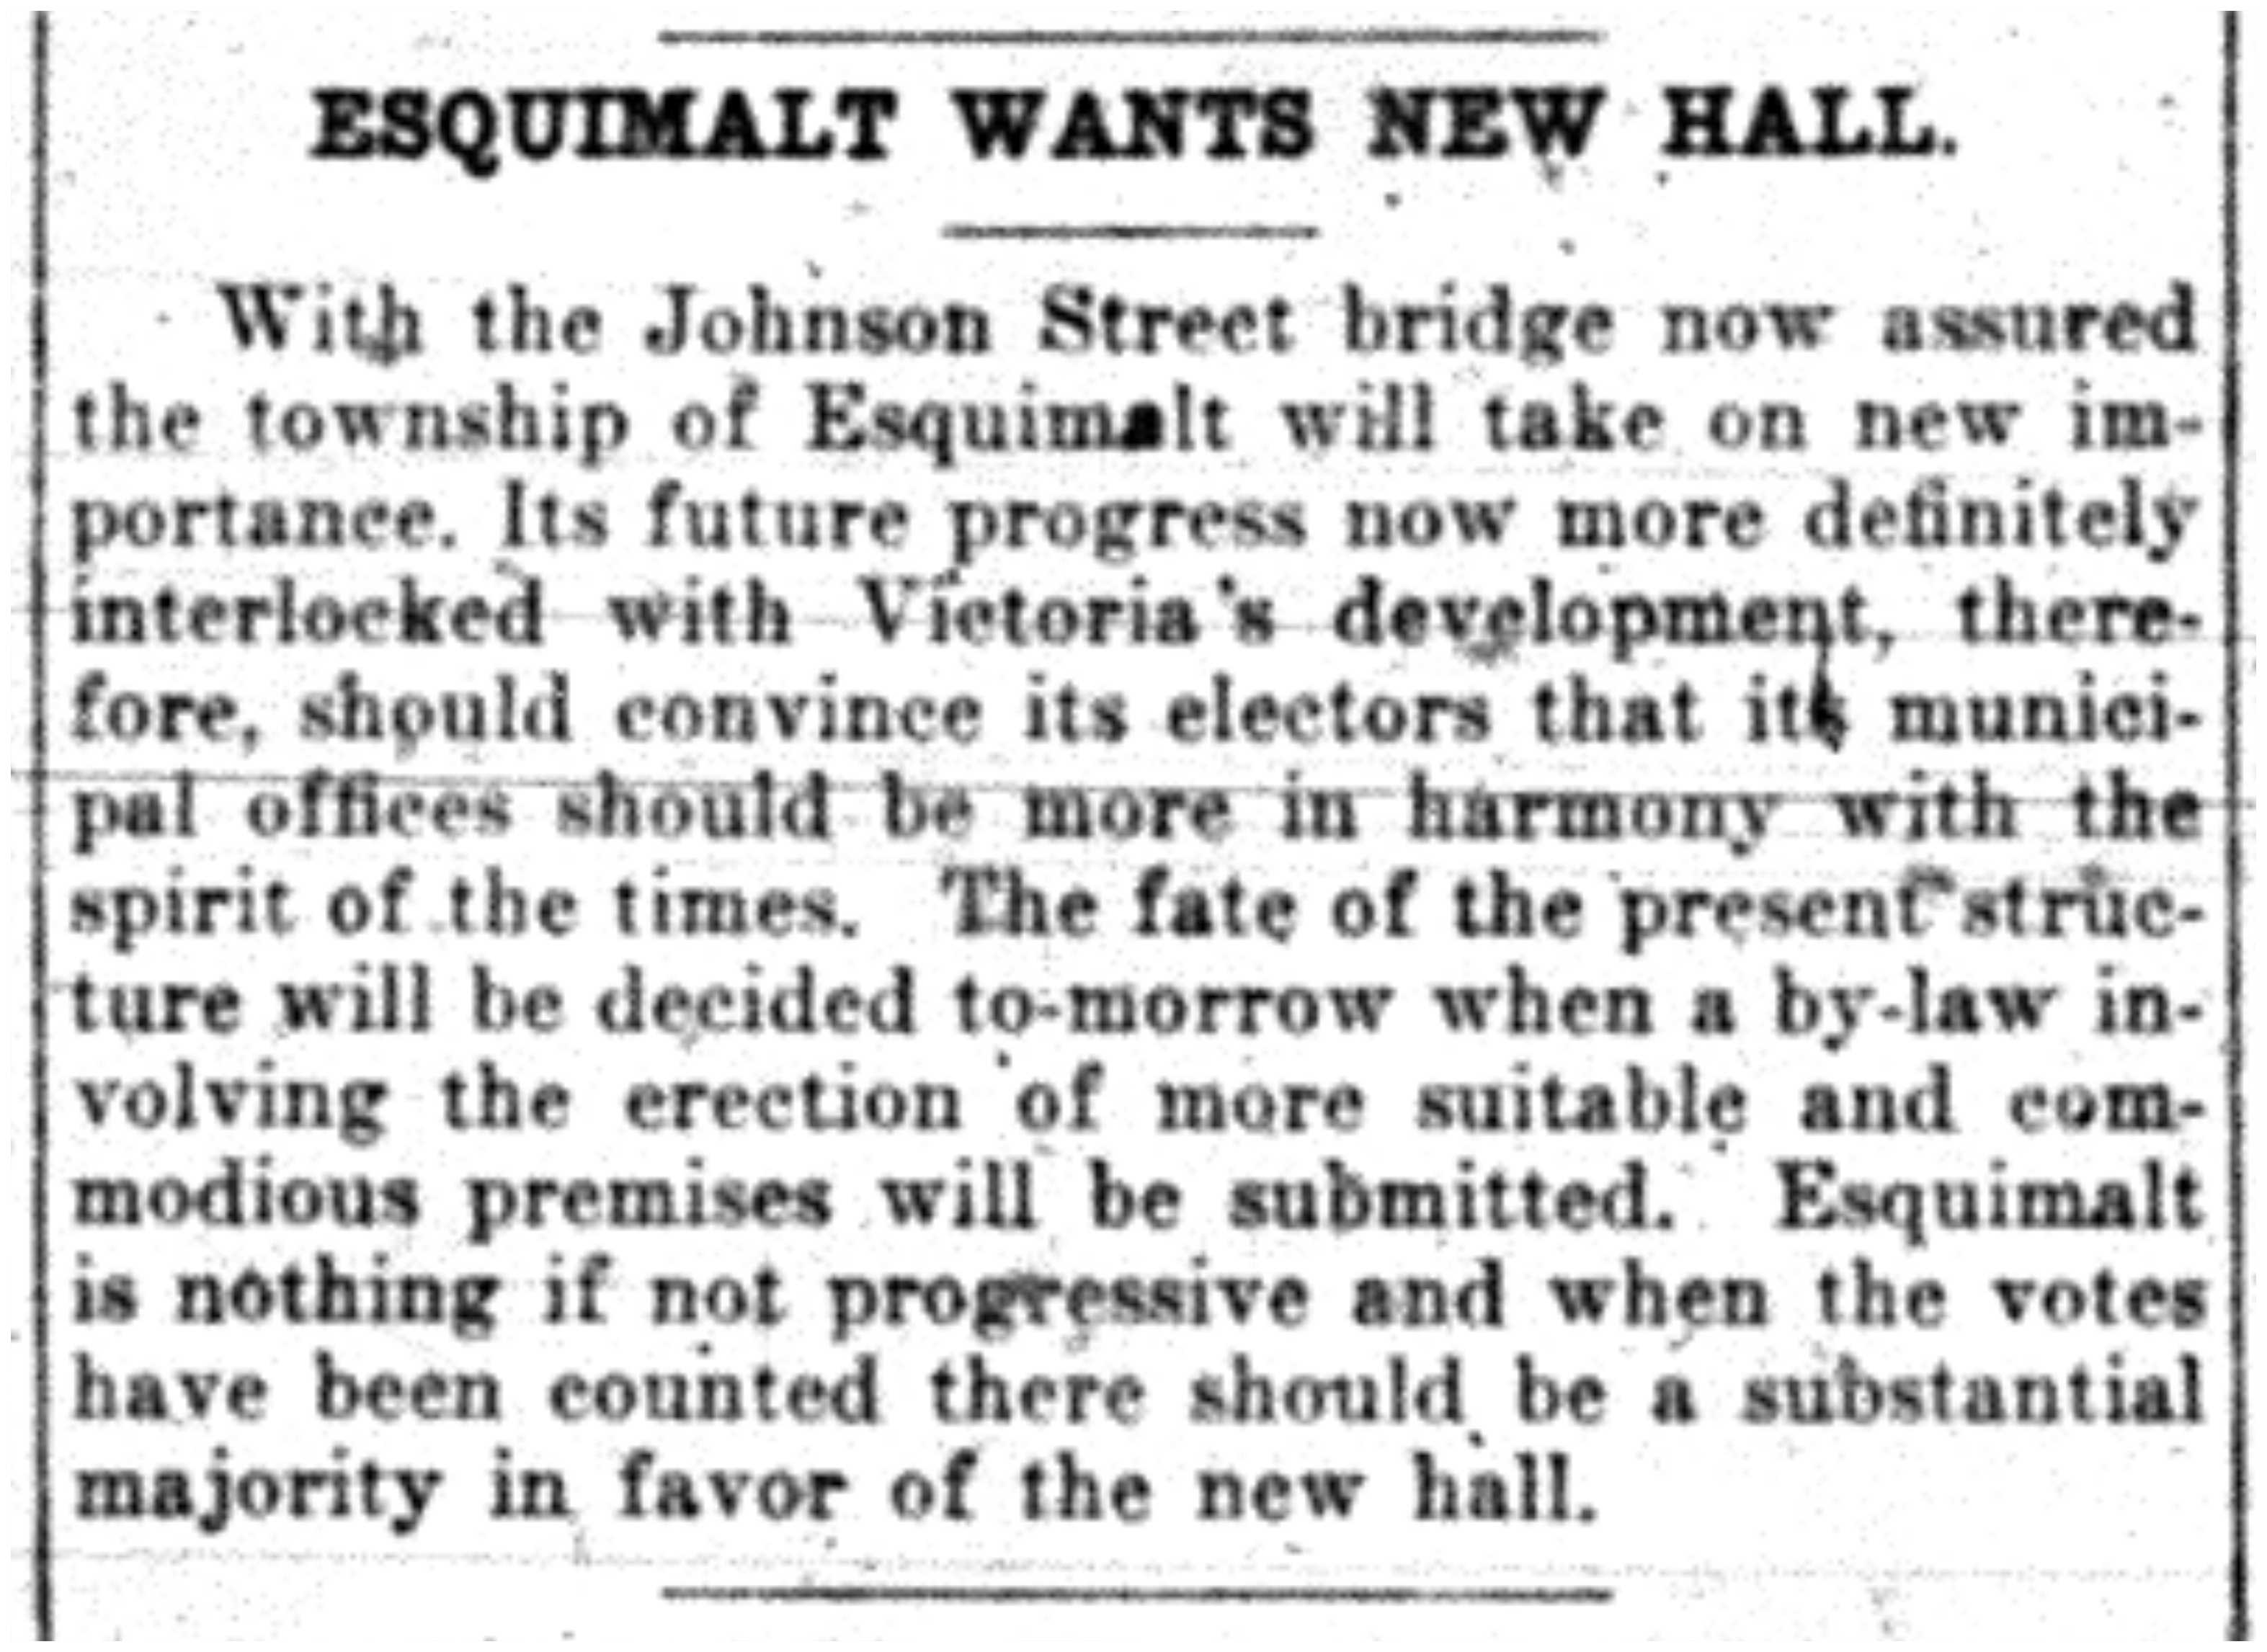 """Esquimalt Wants New Hall"""